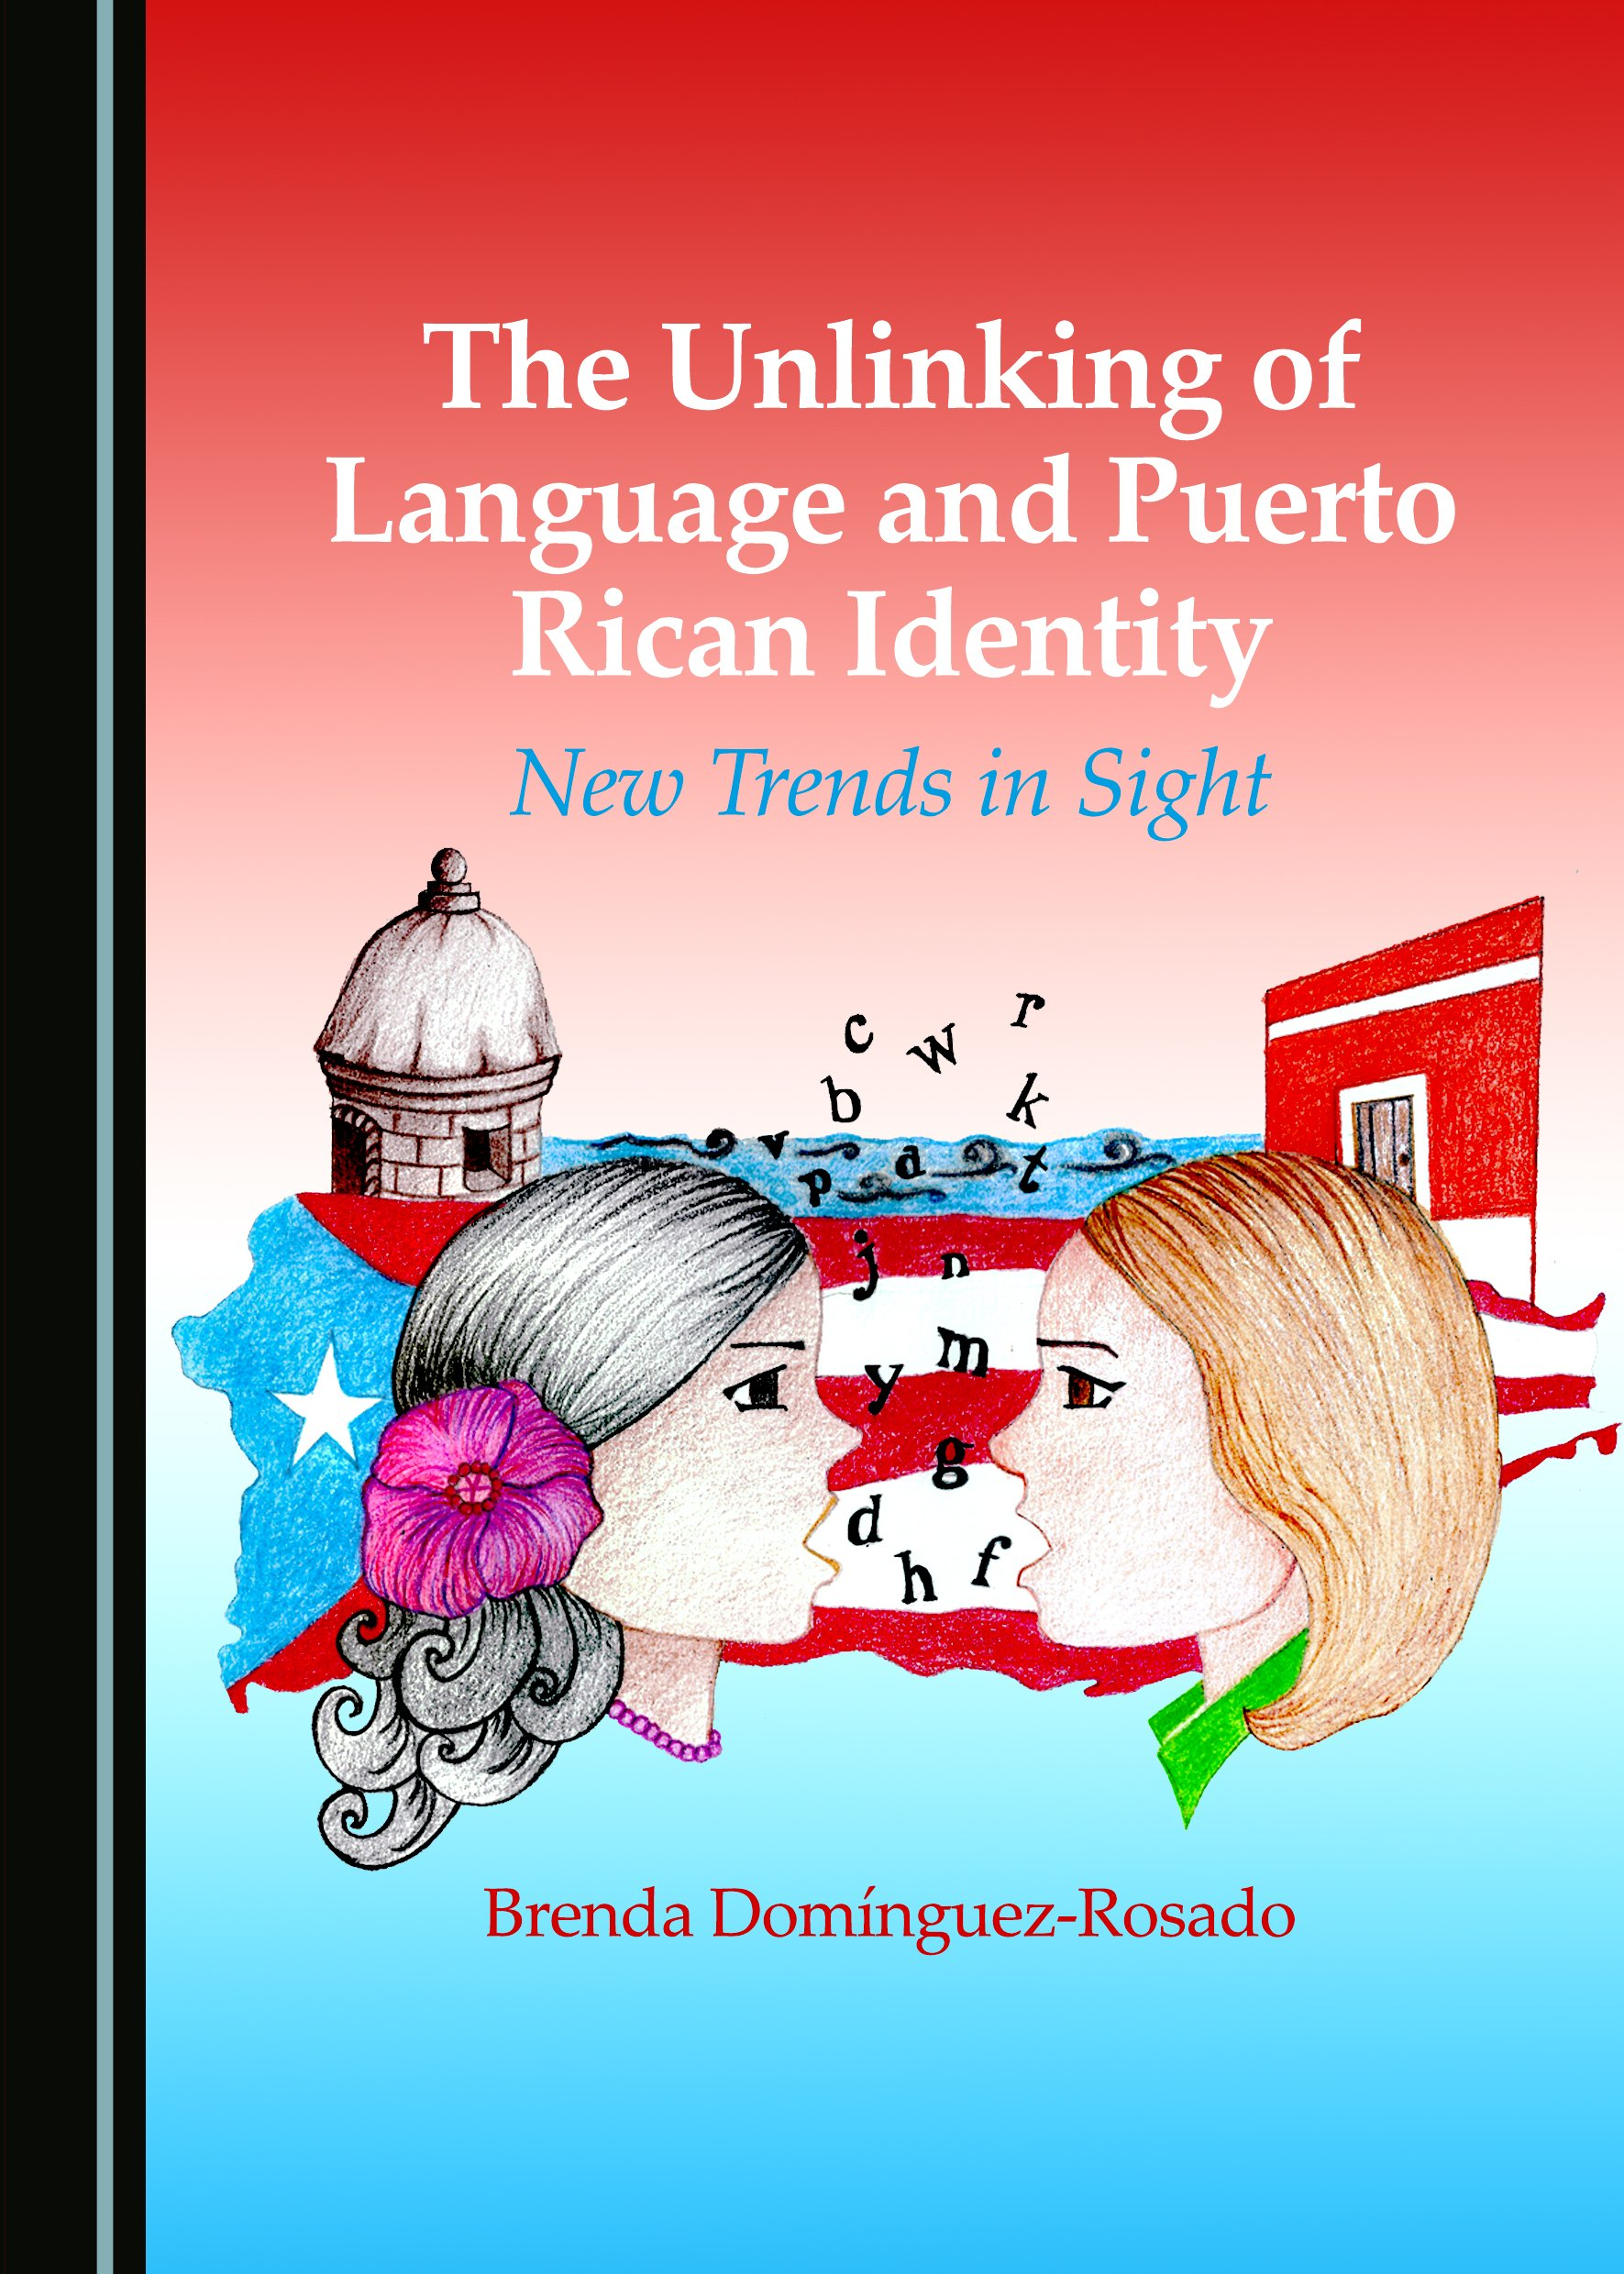 The Unlinking of Language and Puerto Rican Identity: New Trends in Sight